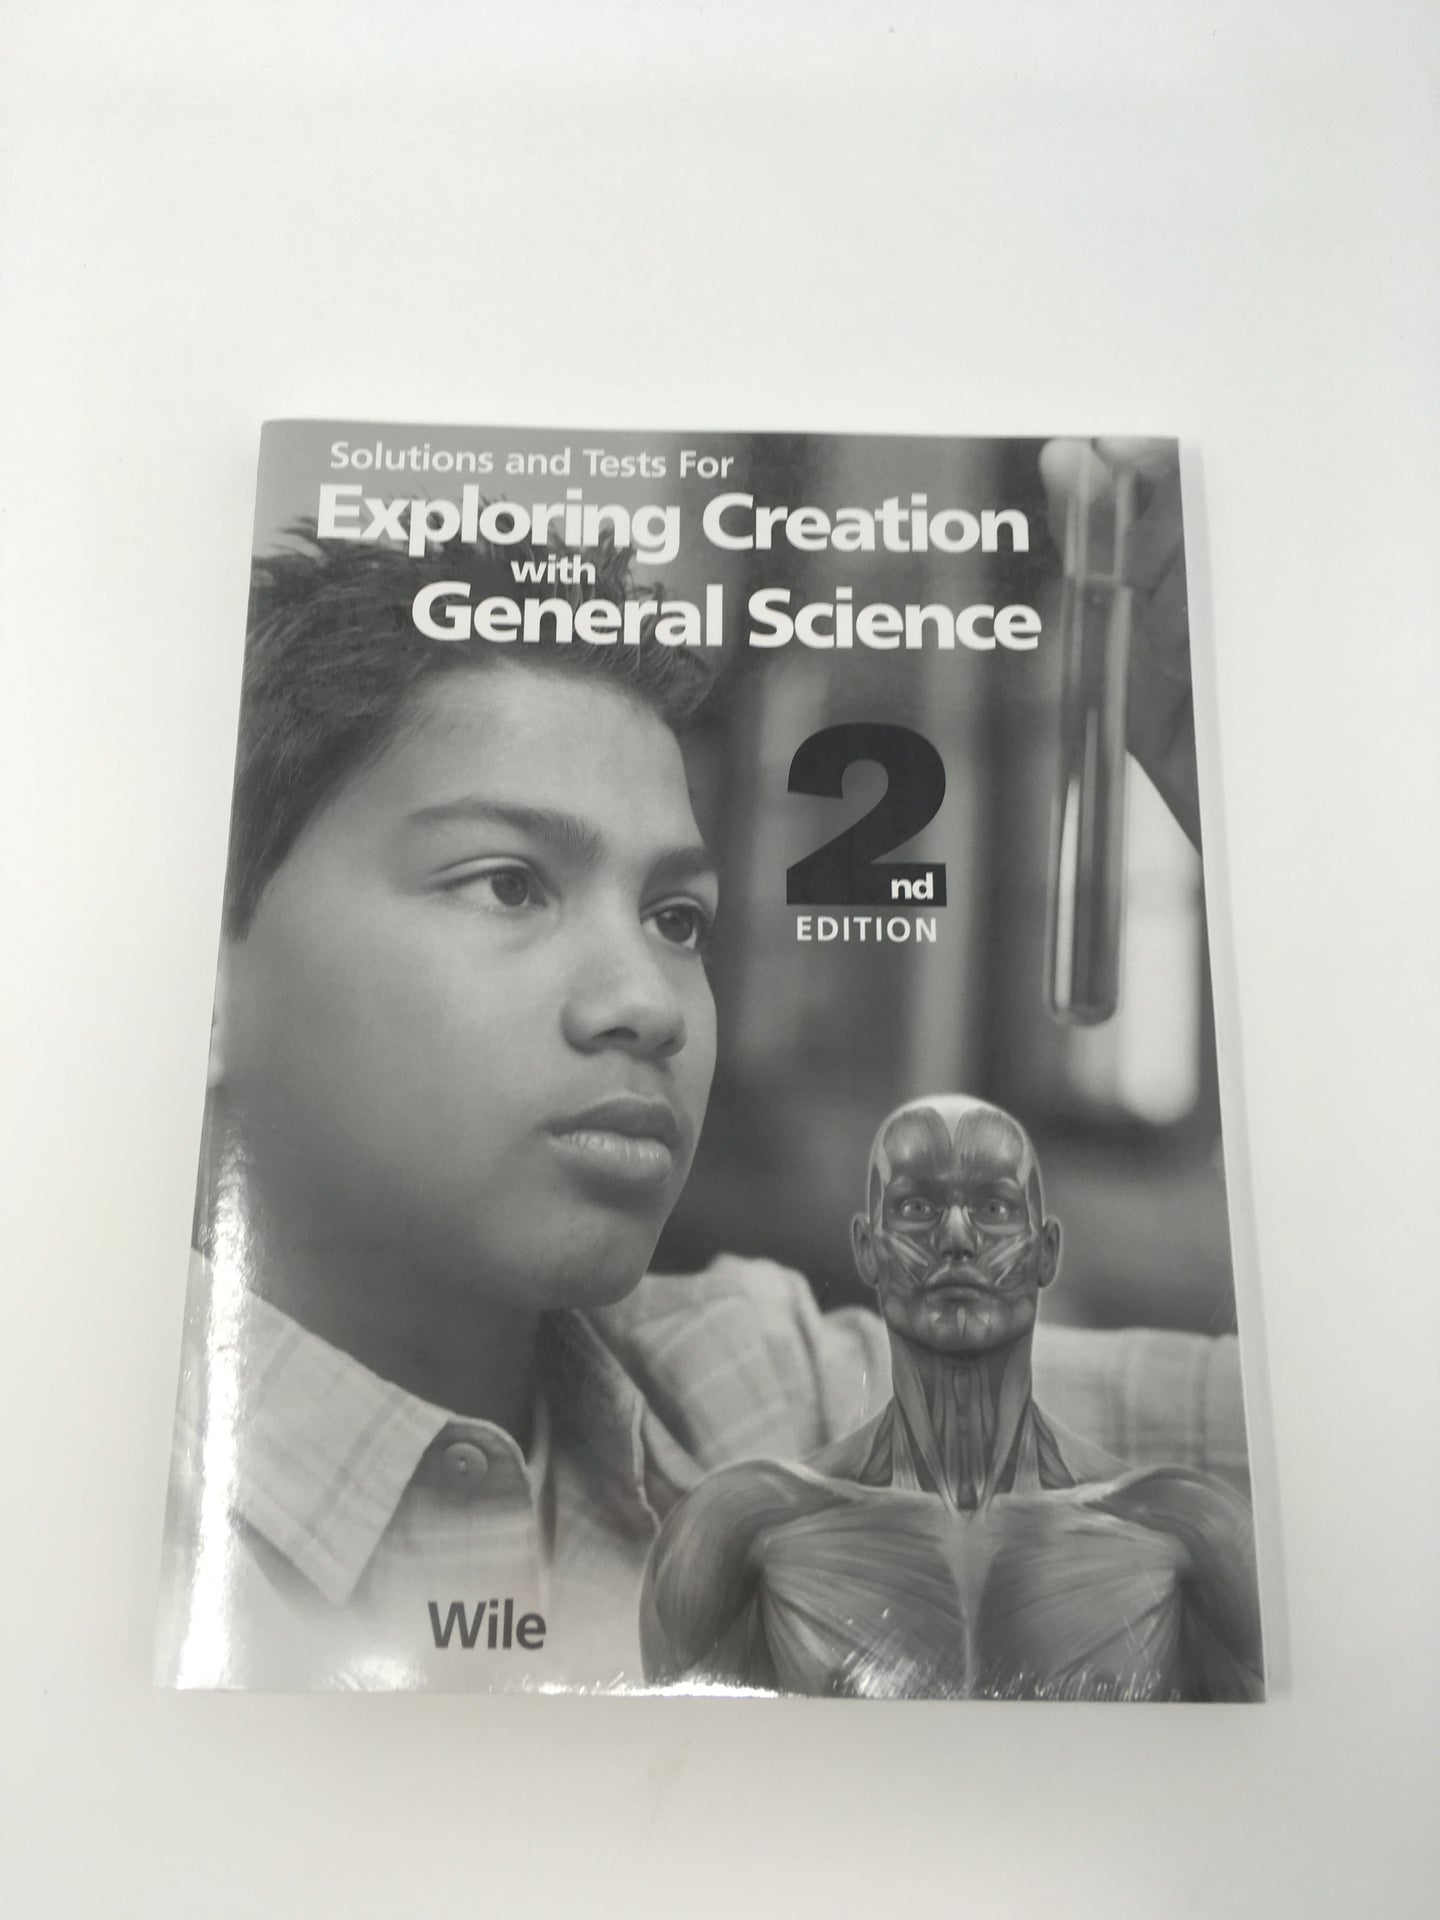 Solutions and Tests for Exploring Creation with General Science 2nd Edition (New) - Little Green Schoolhouse Books